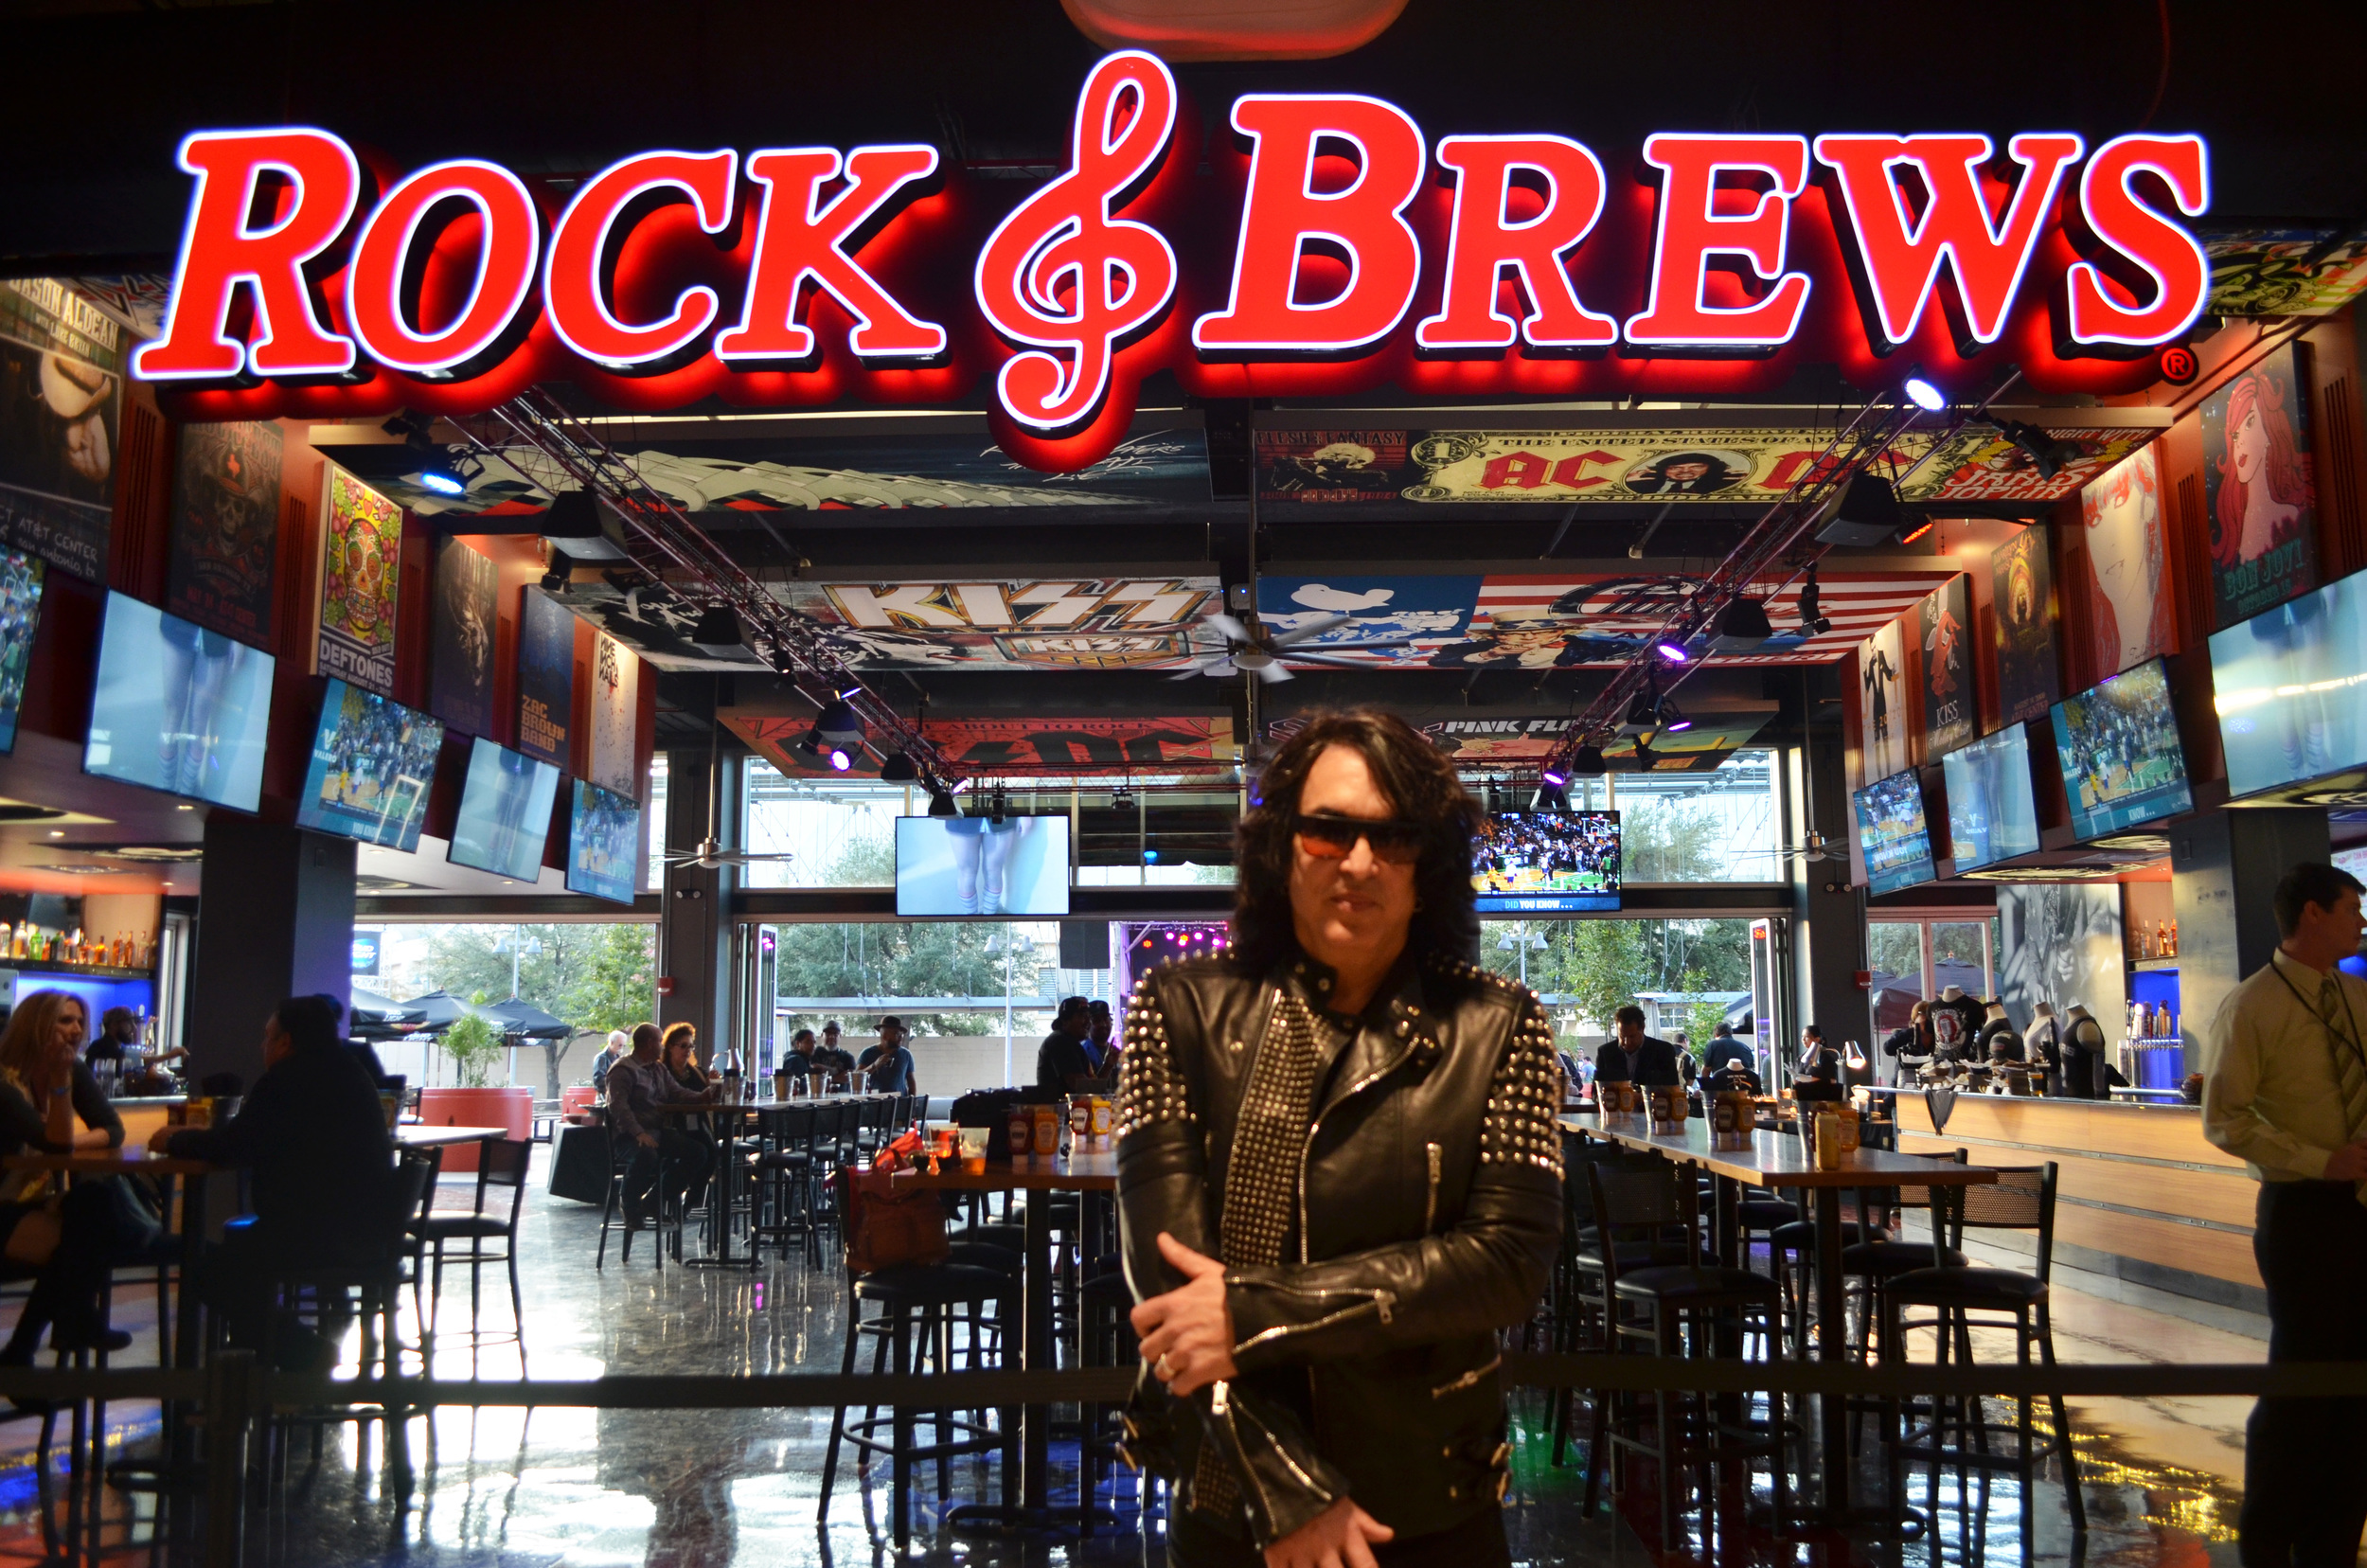 KISS founders Gene Simmons and Paul Stanley (pictured)open first Rock & Brews in Texas at AT&T Center. All photos by Alyssa Bunting